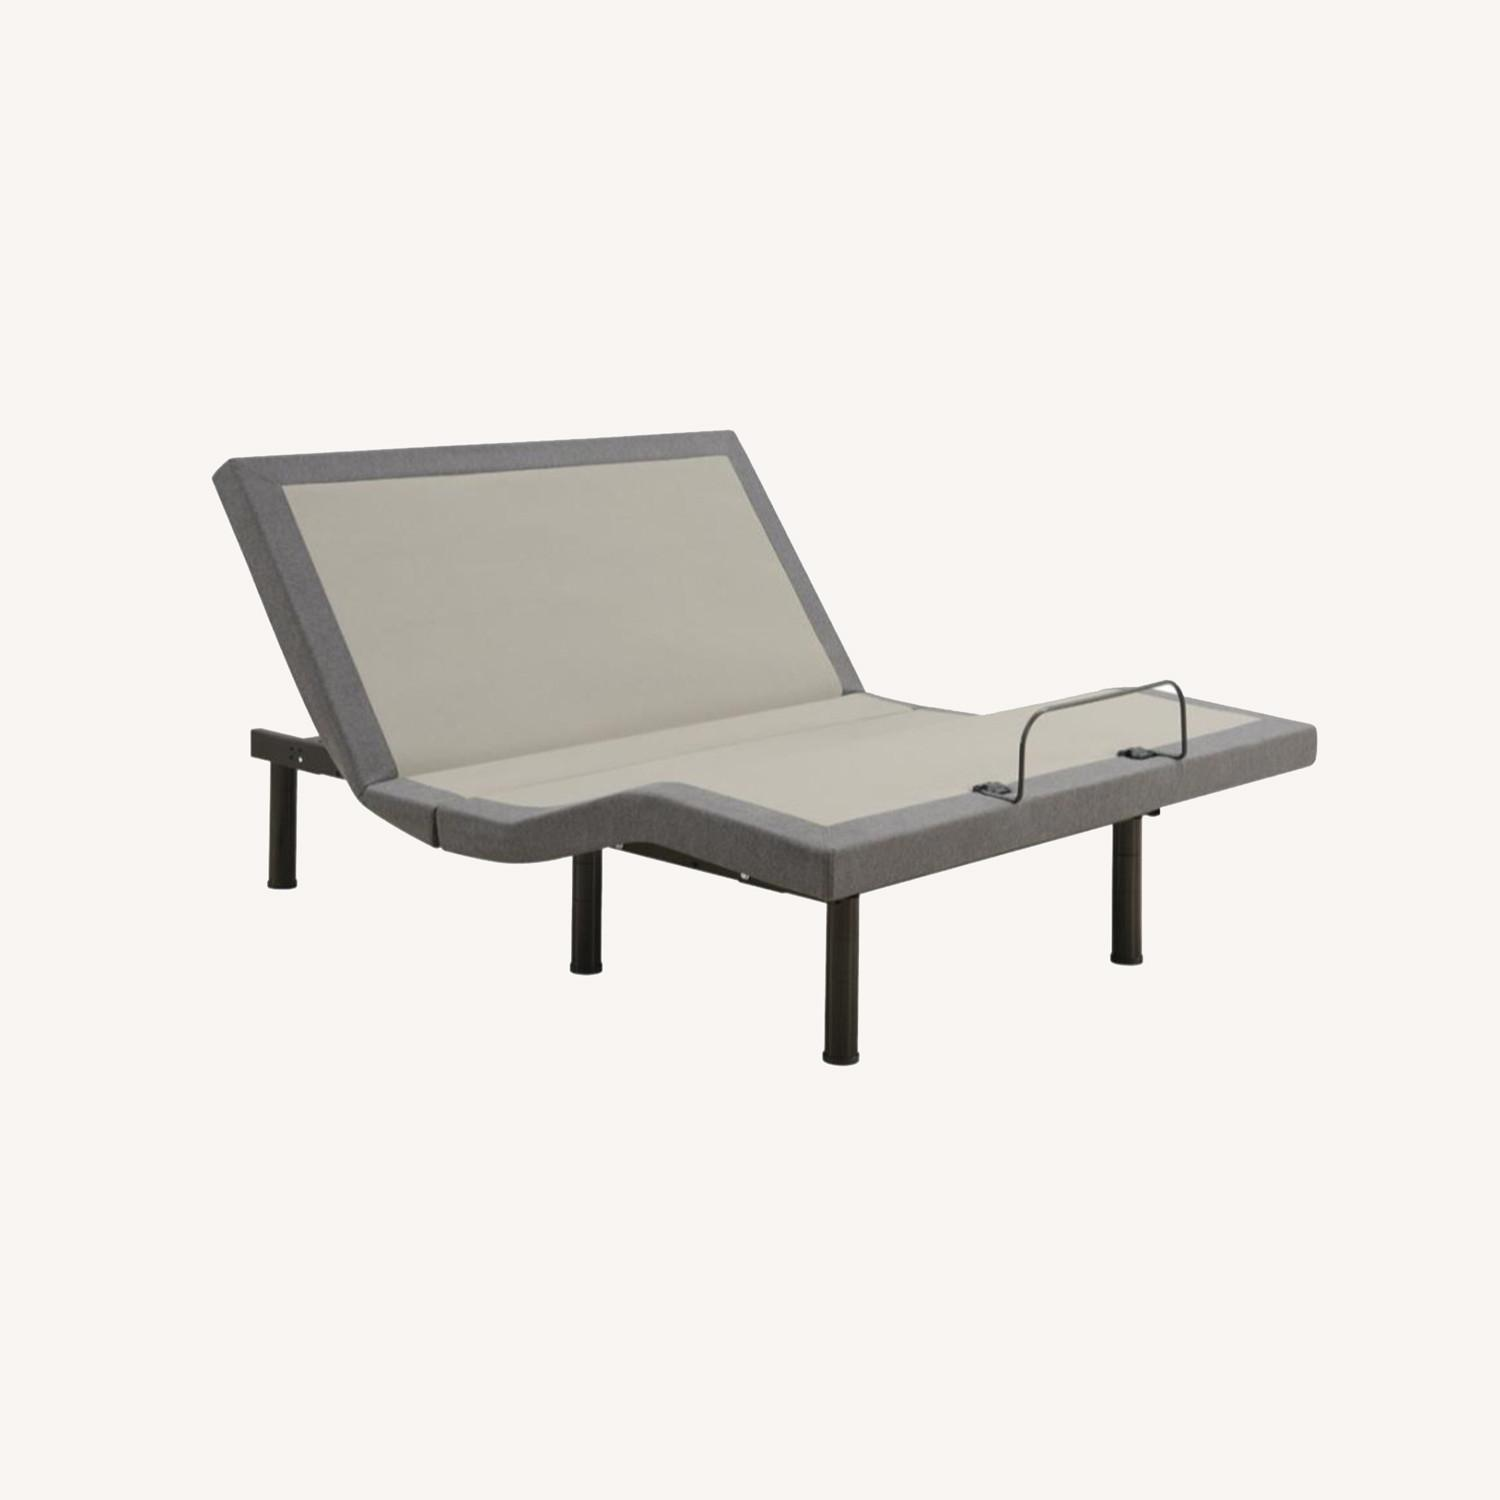 Twin XL Adjustable Bed Base In Grey Fabric Finish - image-15